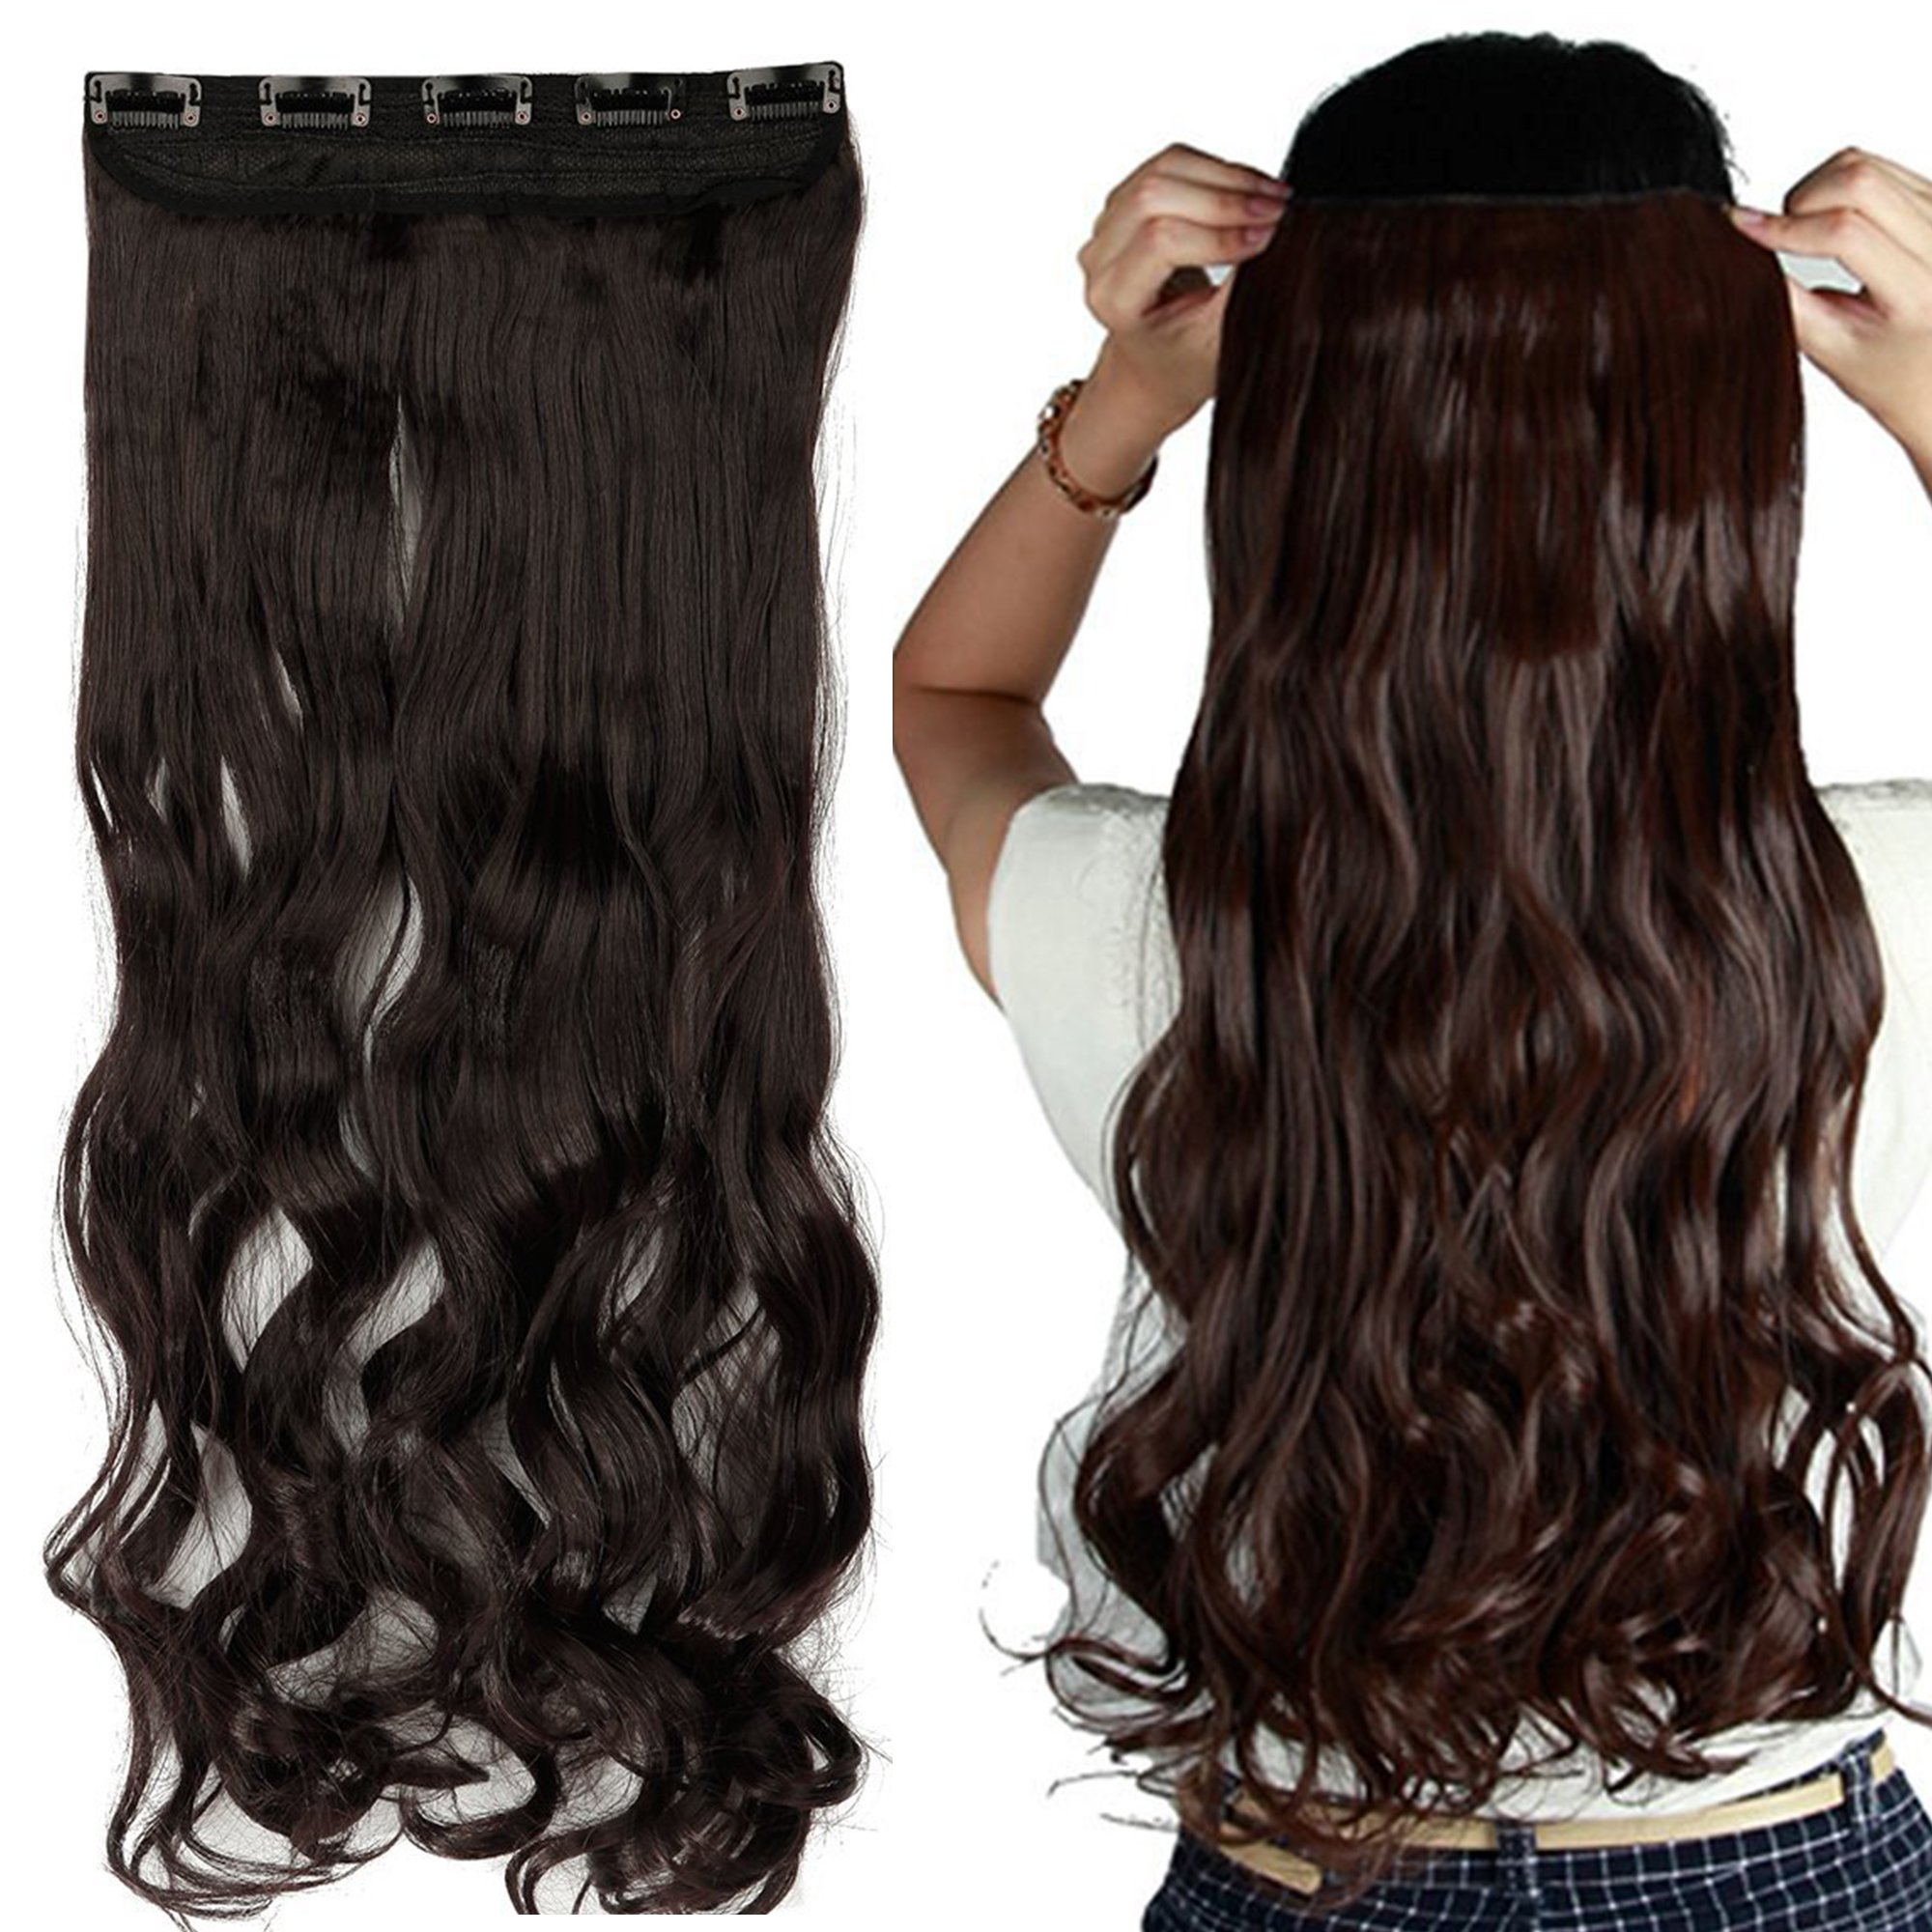 """S-noilite 17""""/23"""" Curly Wave 3/4 Full Head One Piece 5clips Clip in Hair Extensions Synthetic Hair Pieces for Girl Lady Women 48 colors (17"""" - Curly, Dark Brown)"""